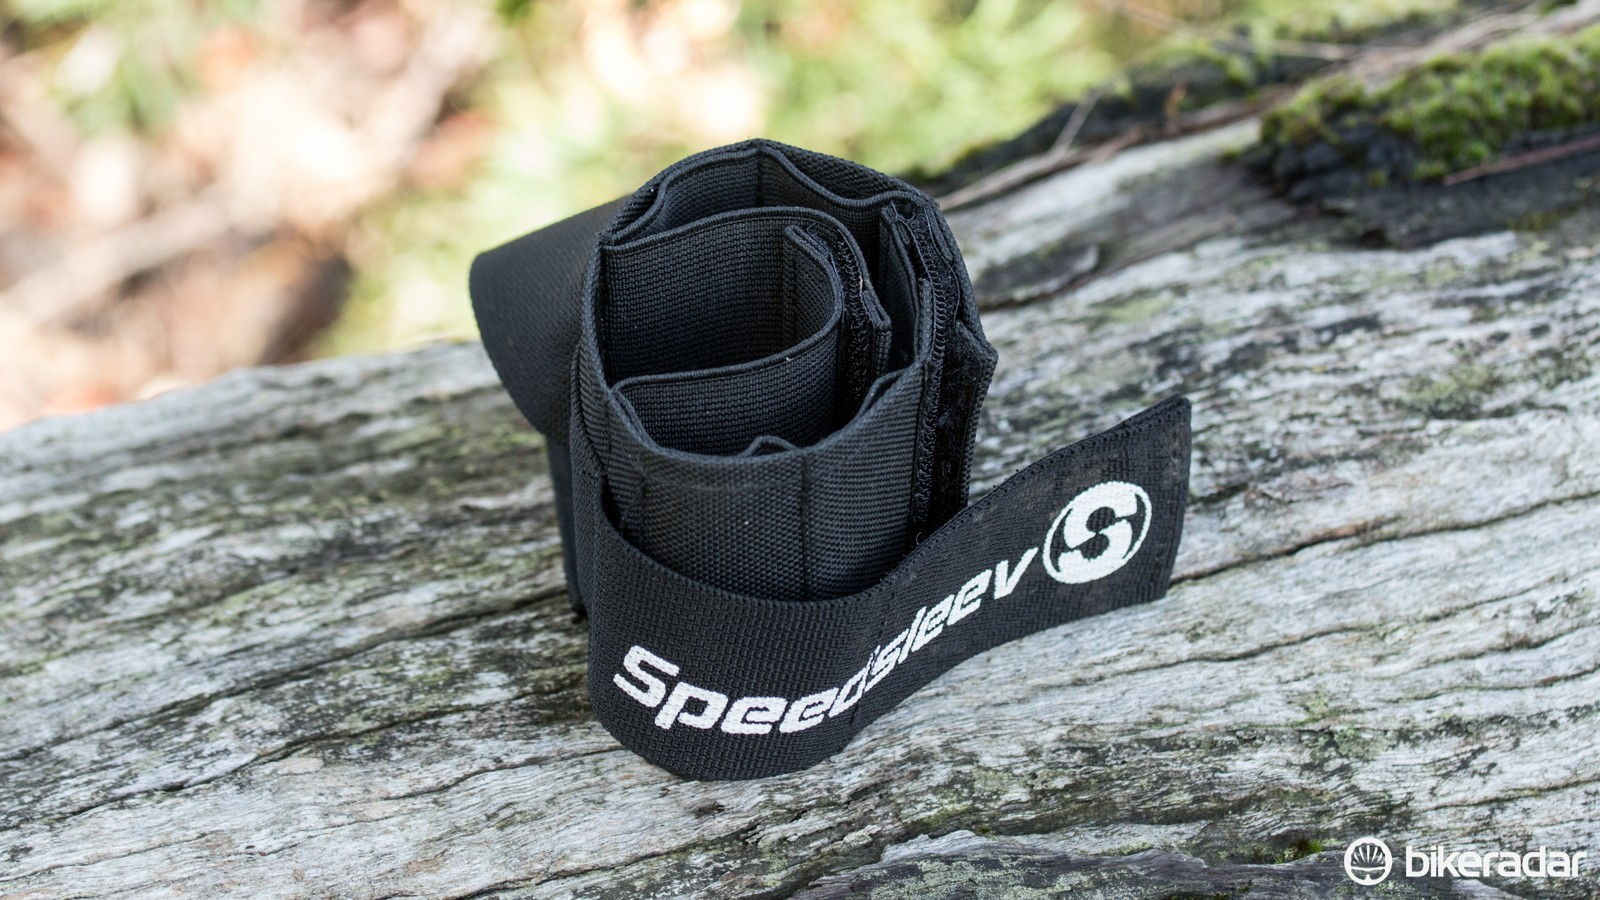 The Speedsleev Elastic Pro Seatsleeve in a small size